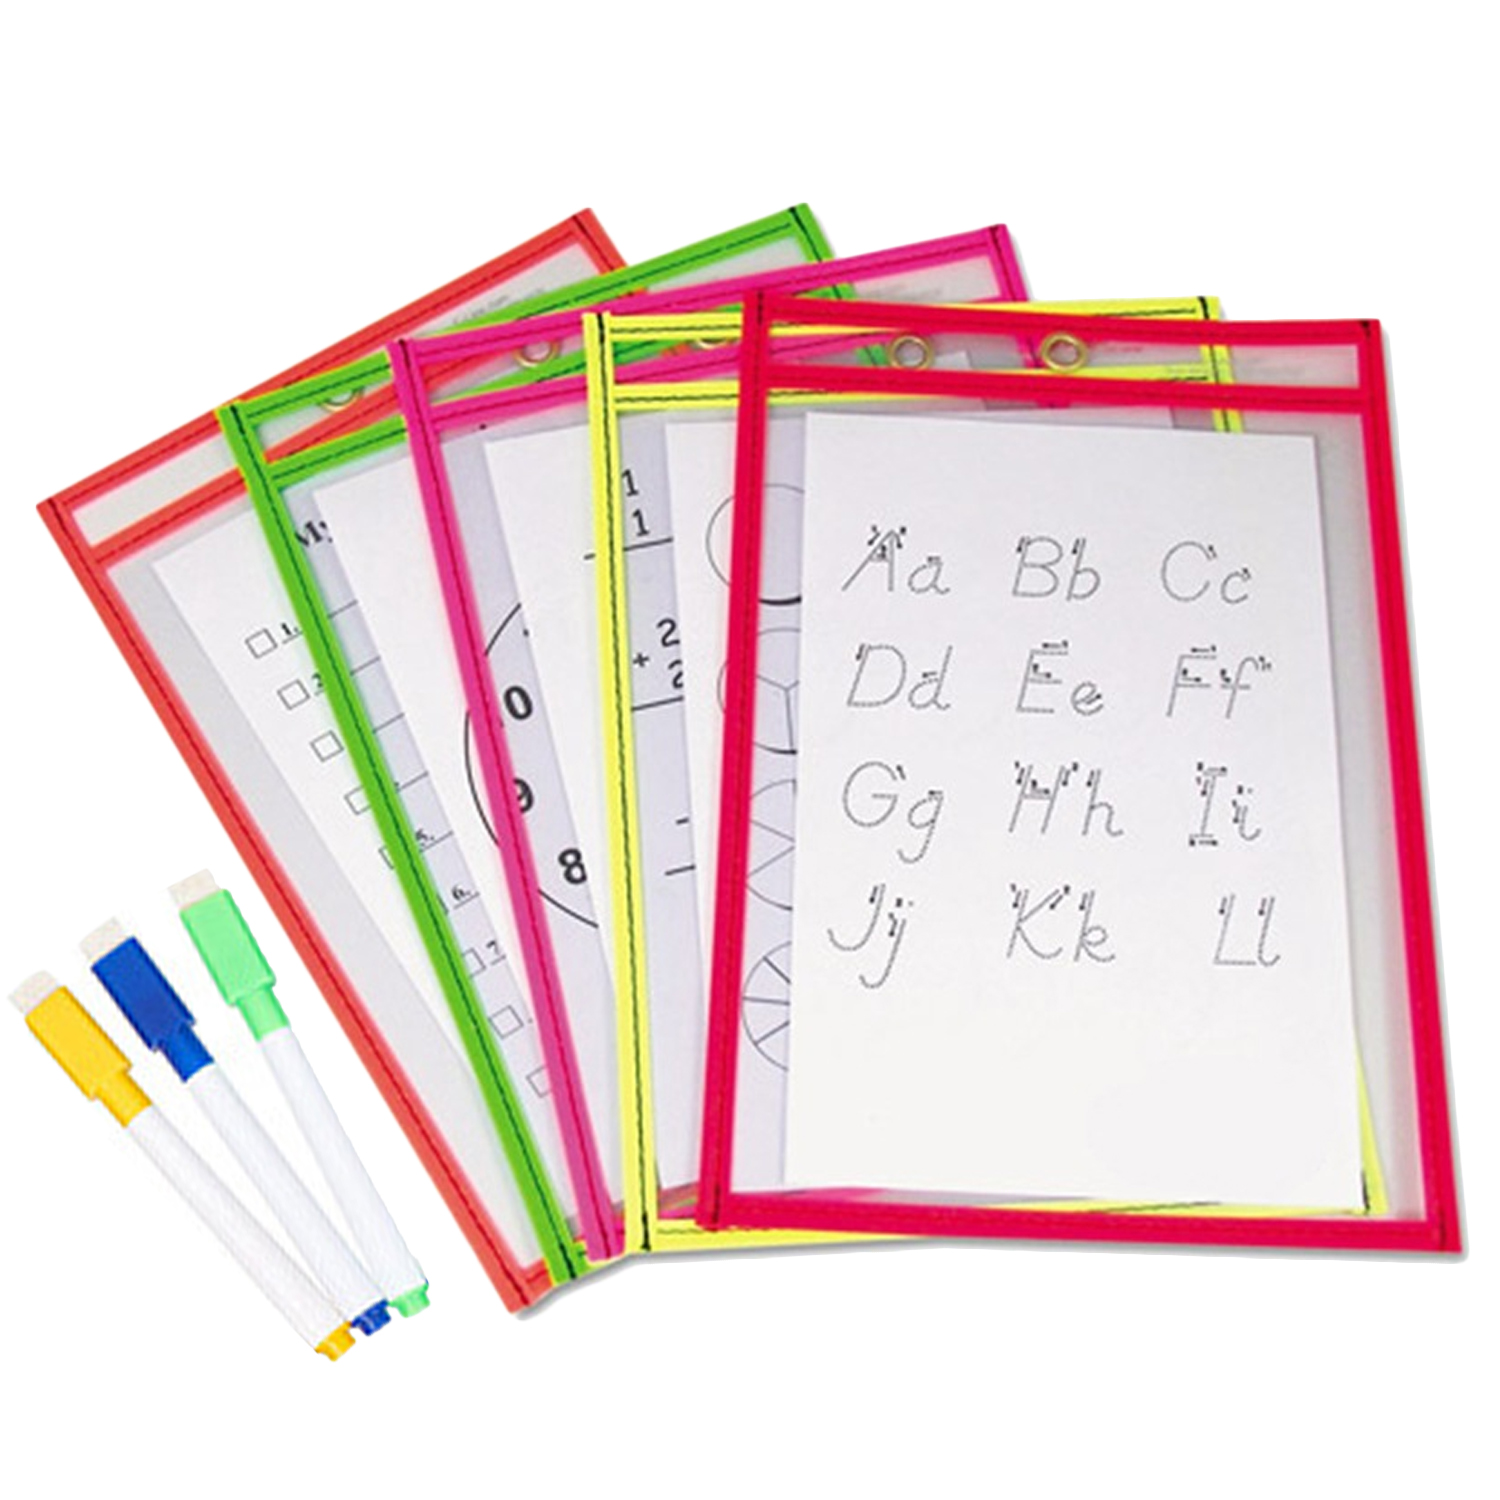 10PCS Reusable Clear PVC Dry Erase Pockets Sleeves   3PCS Pens For Office Classroom Organization Teaching Supplies Random Color